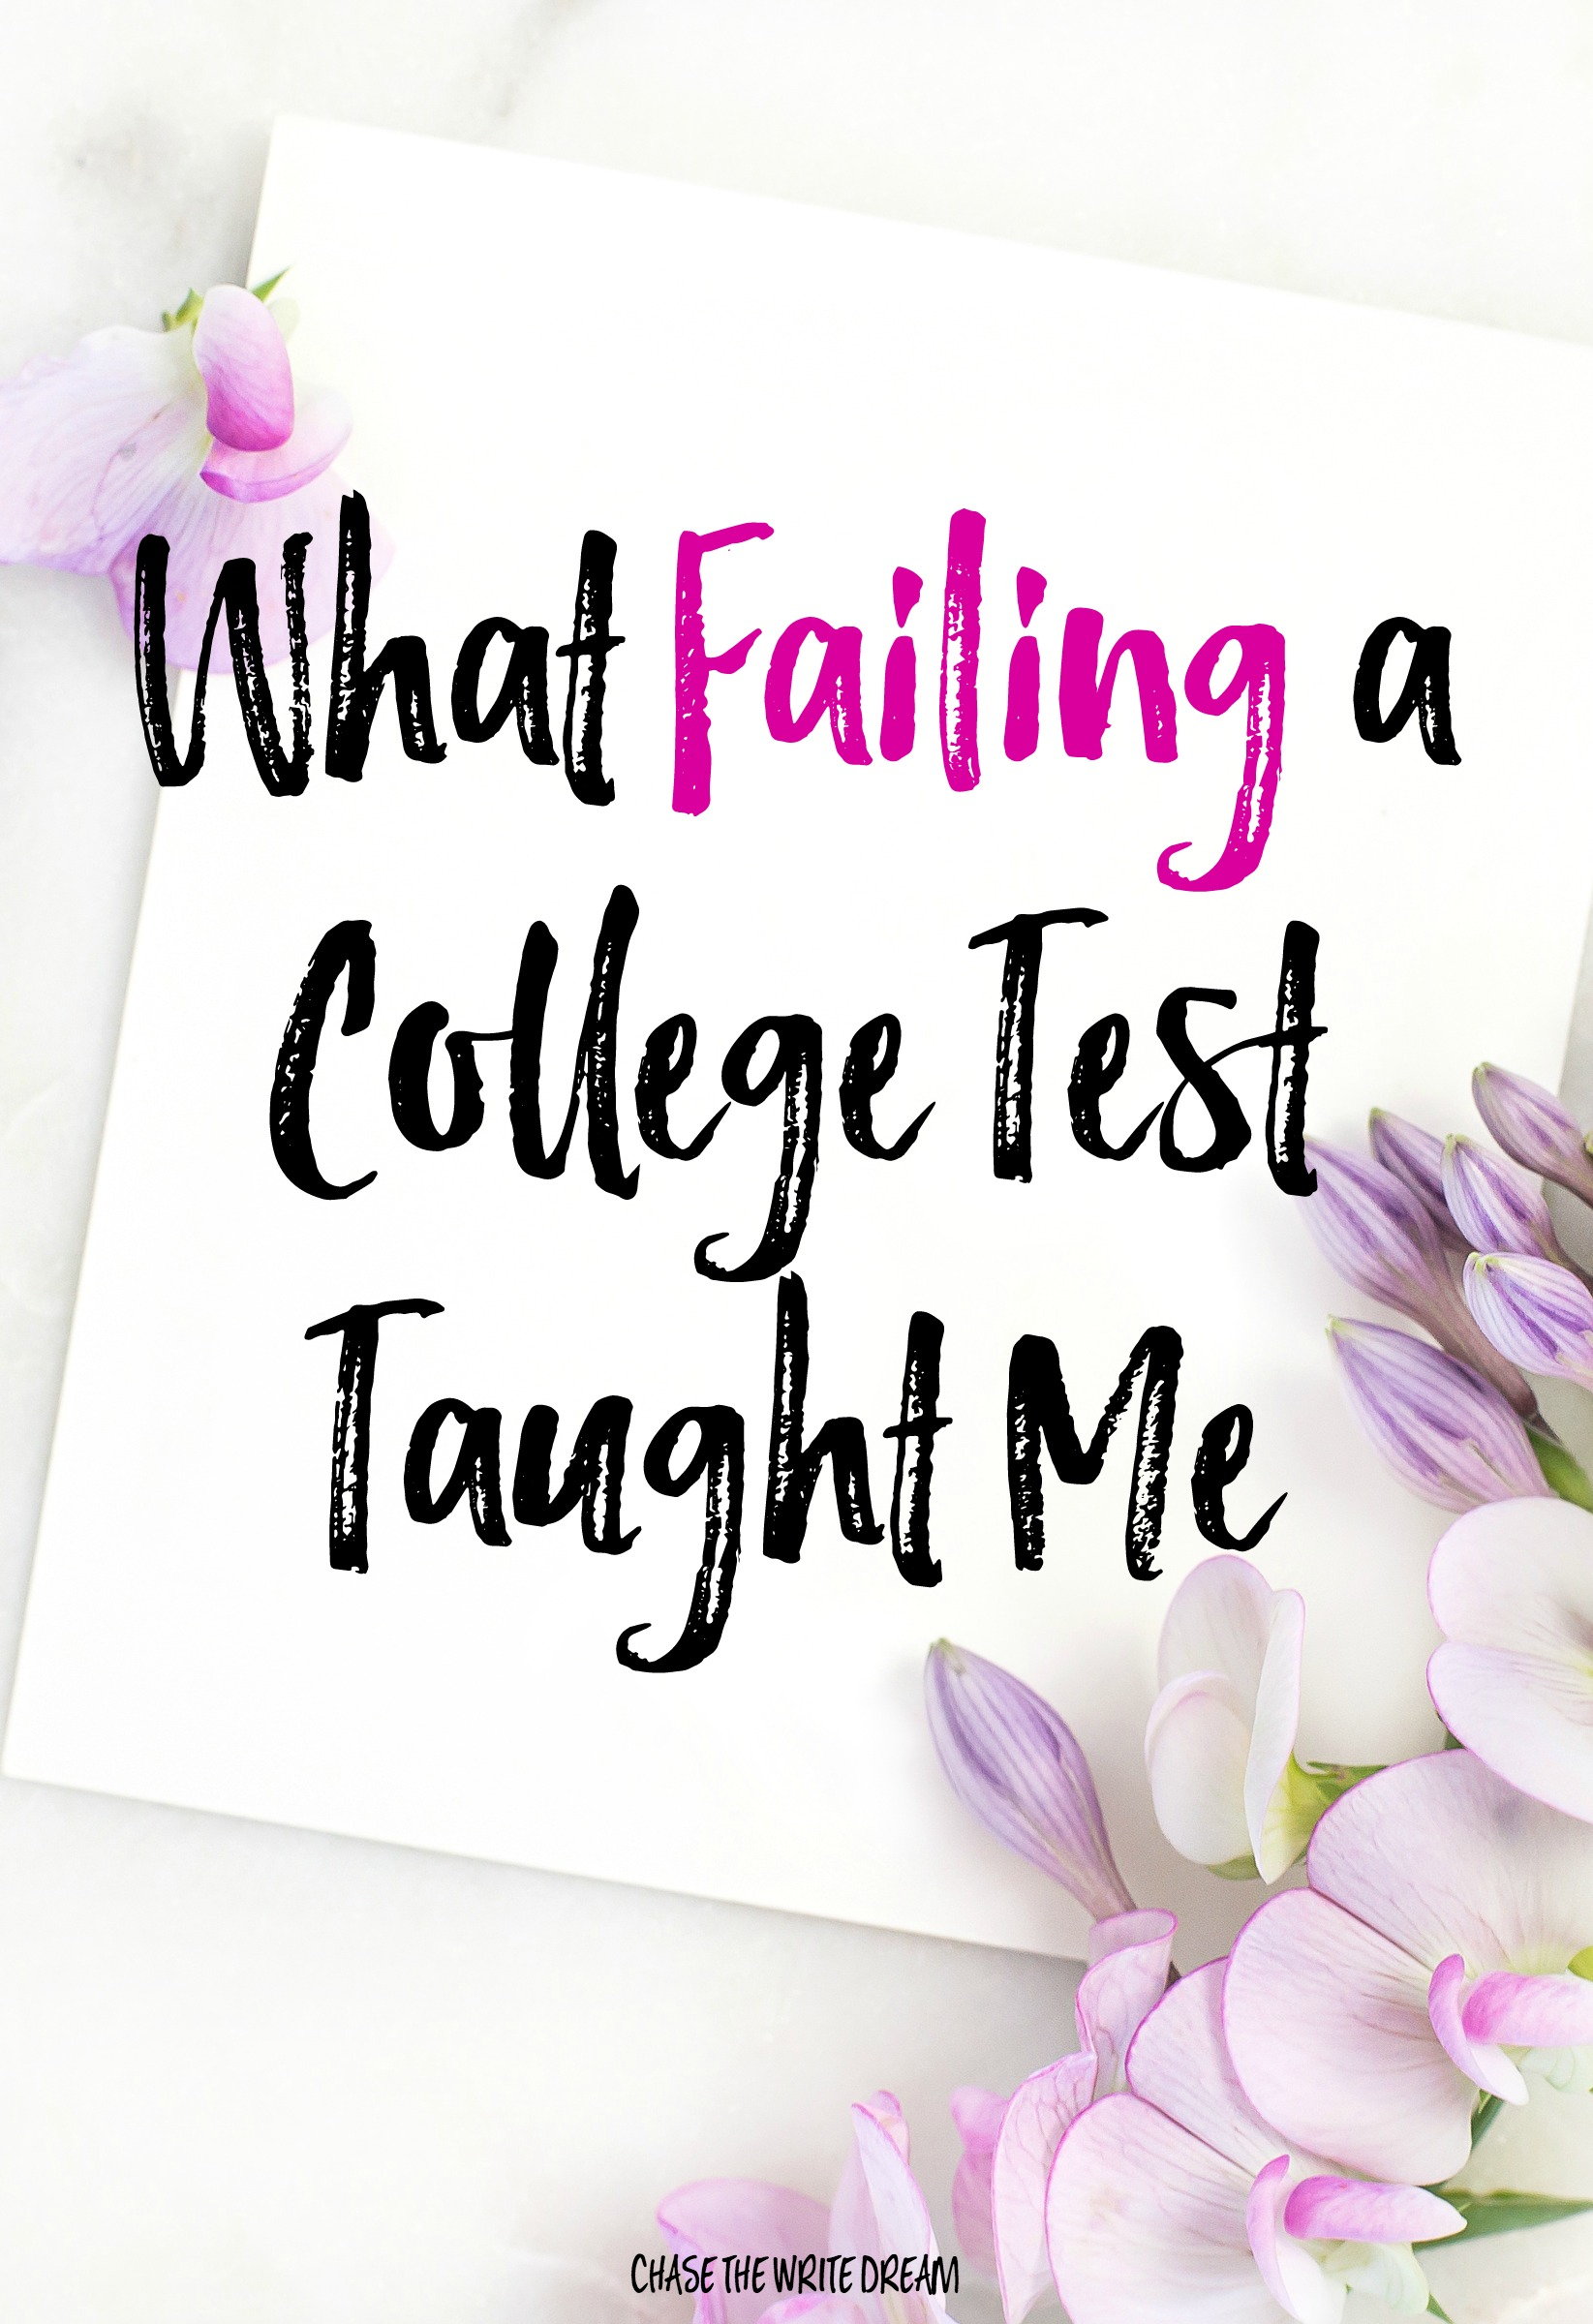 failing a class in college If you fail a class and are paying tuition with pell grant funds, you will still receive a pell grant for the current semester, but your financial aid may be affected.